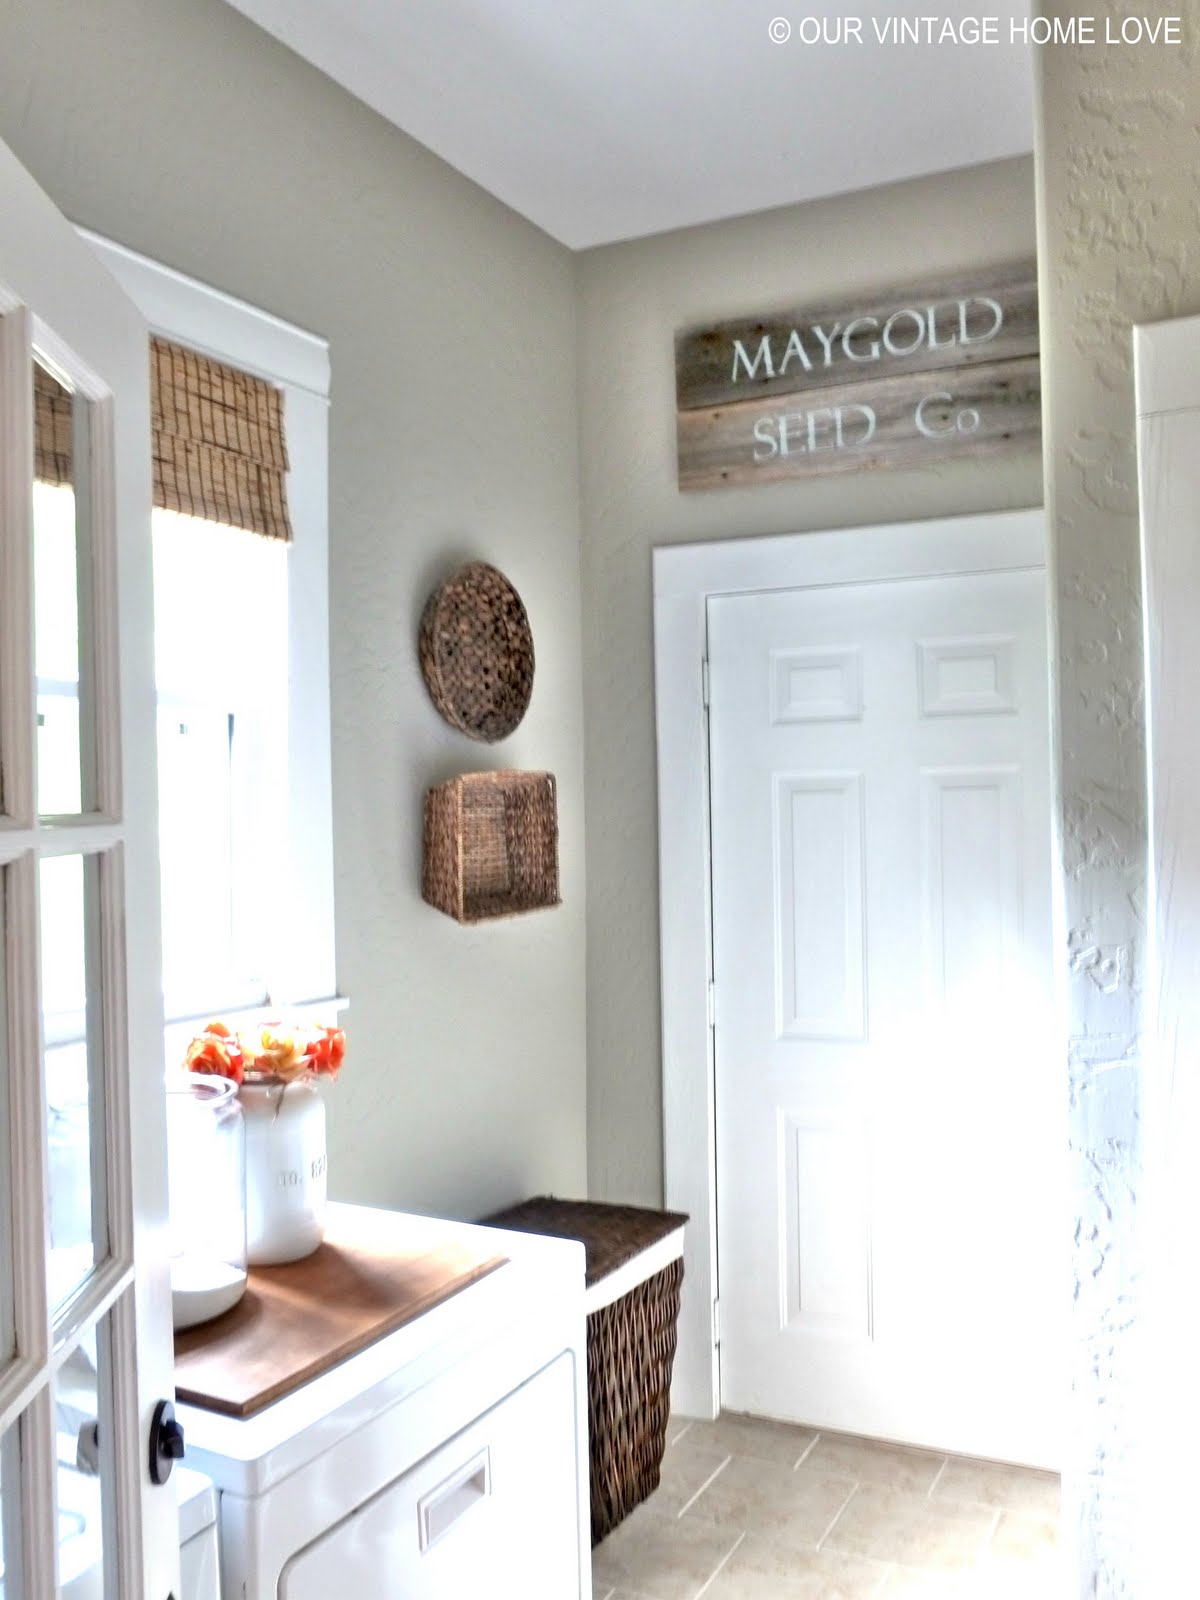 Vintage Home Love Laundry Room Ideas And A Vintage